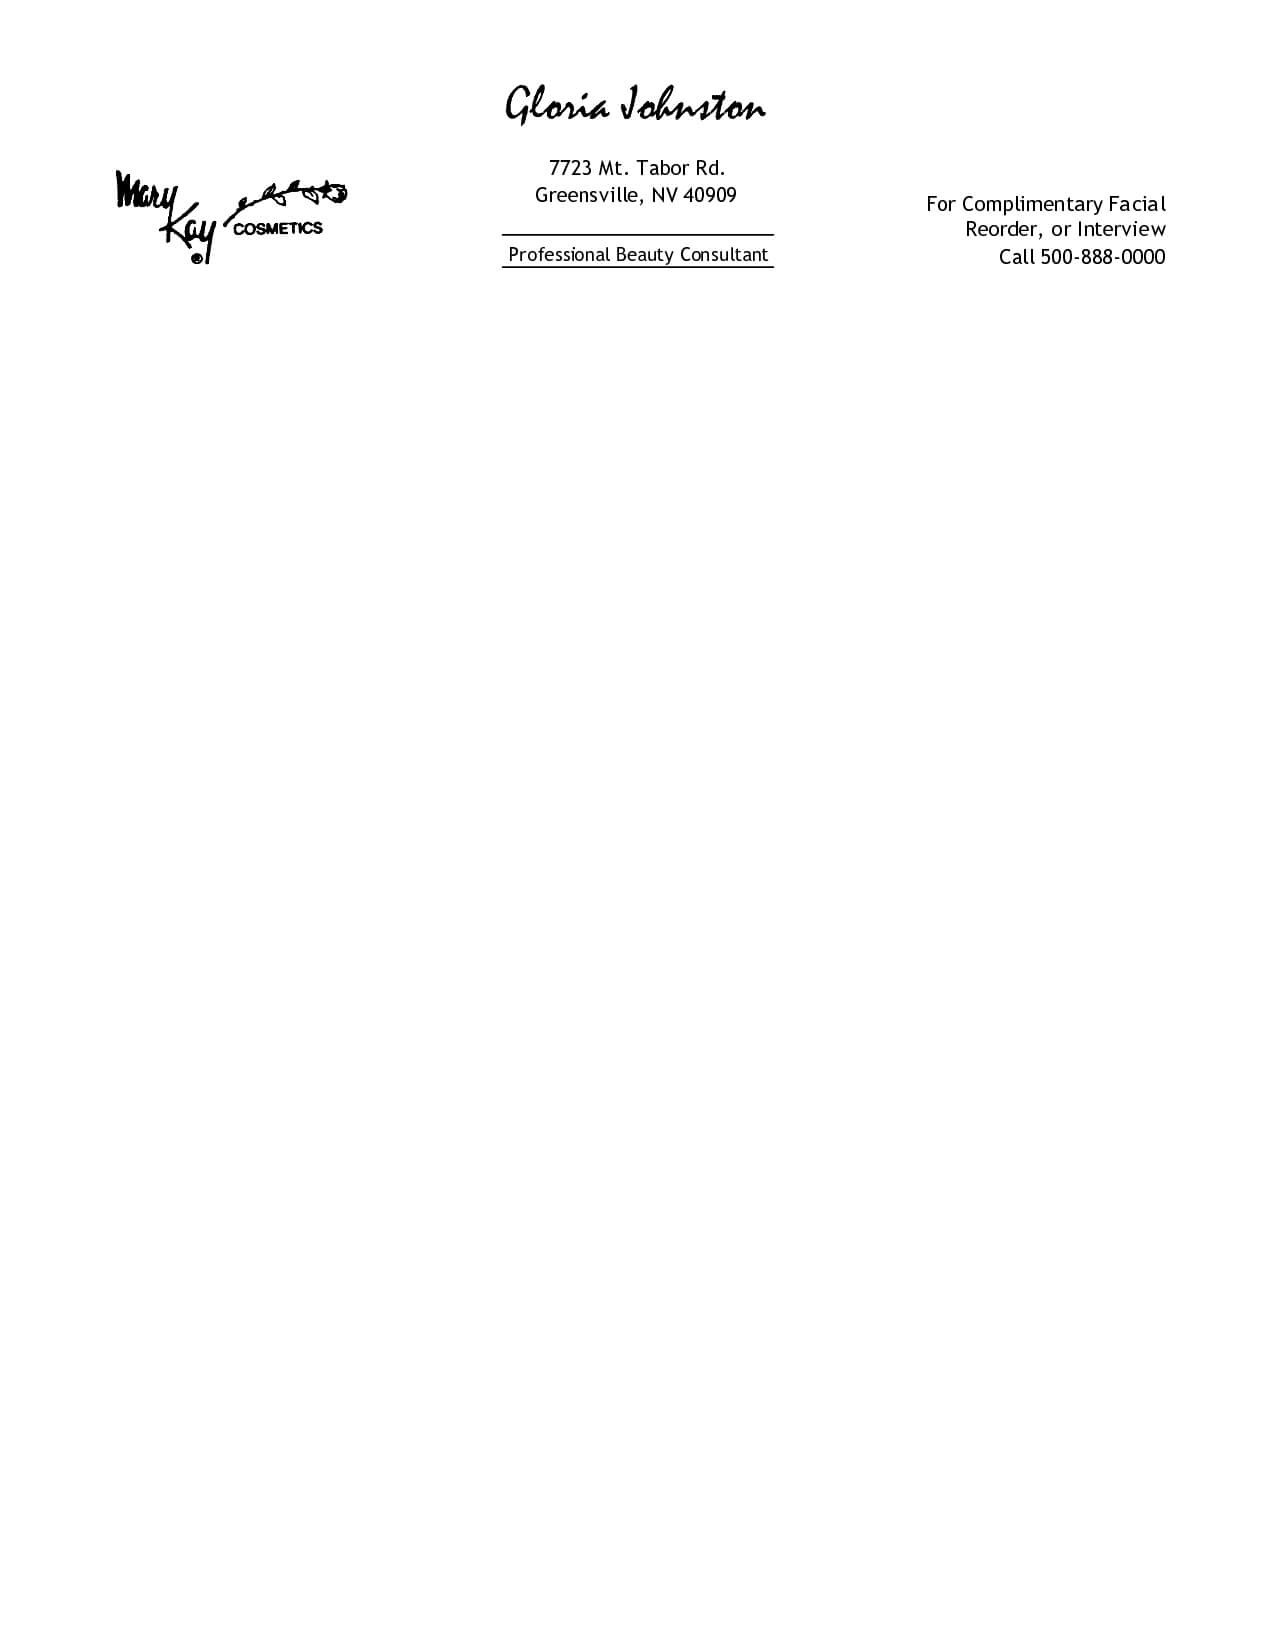 Free Printable Personal Letterhead Templates   Free inside Word Stationery Template Free